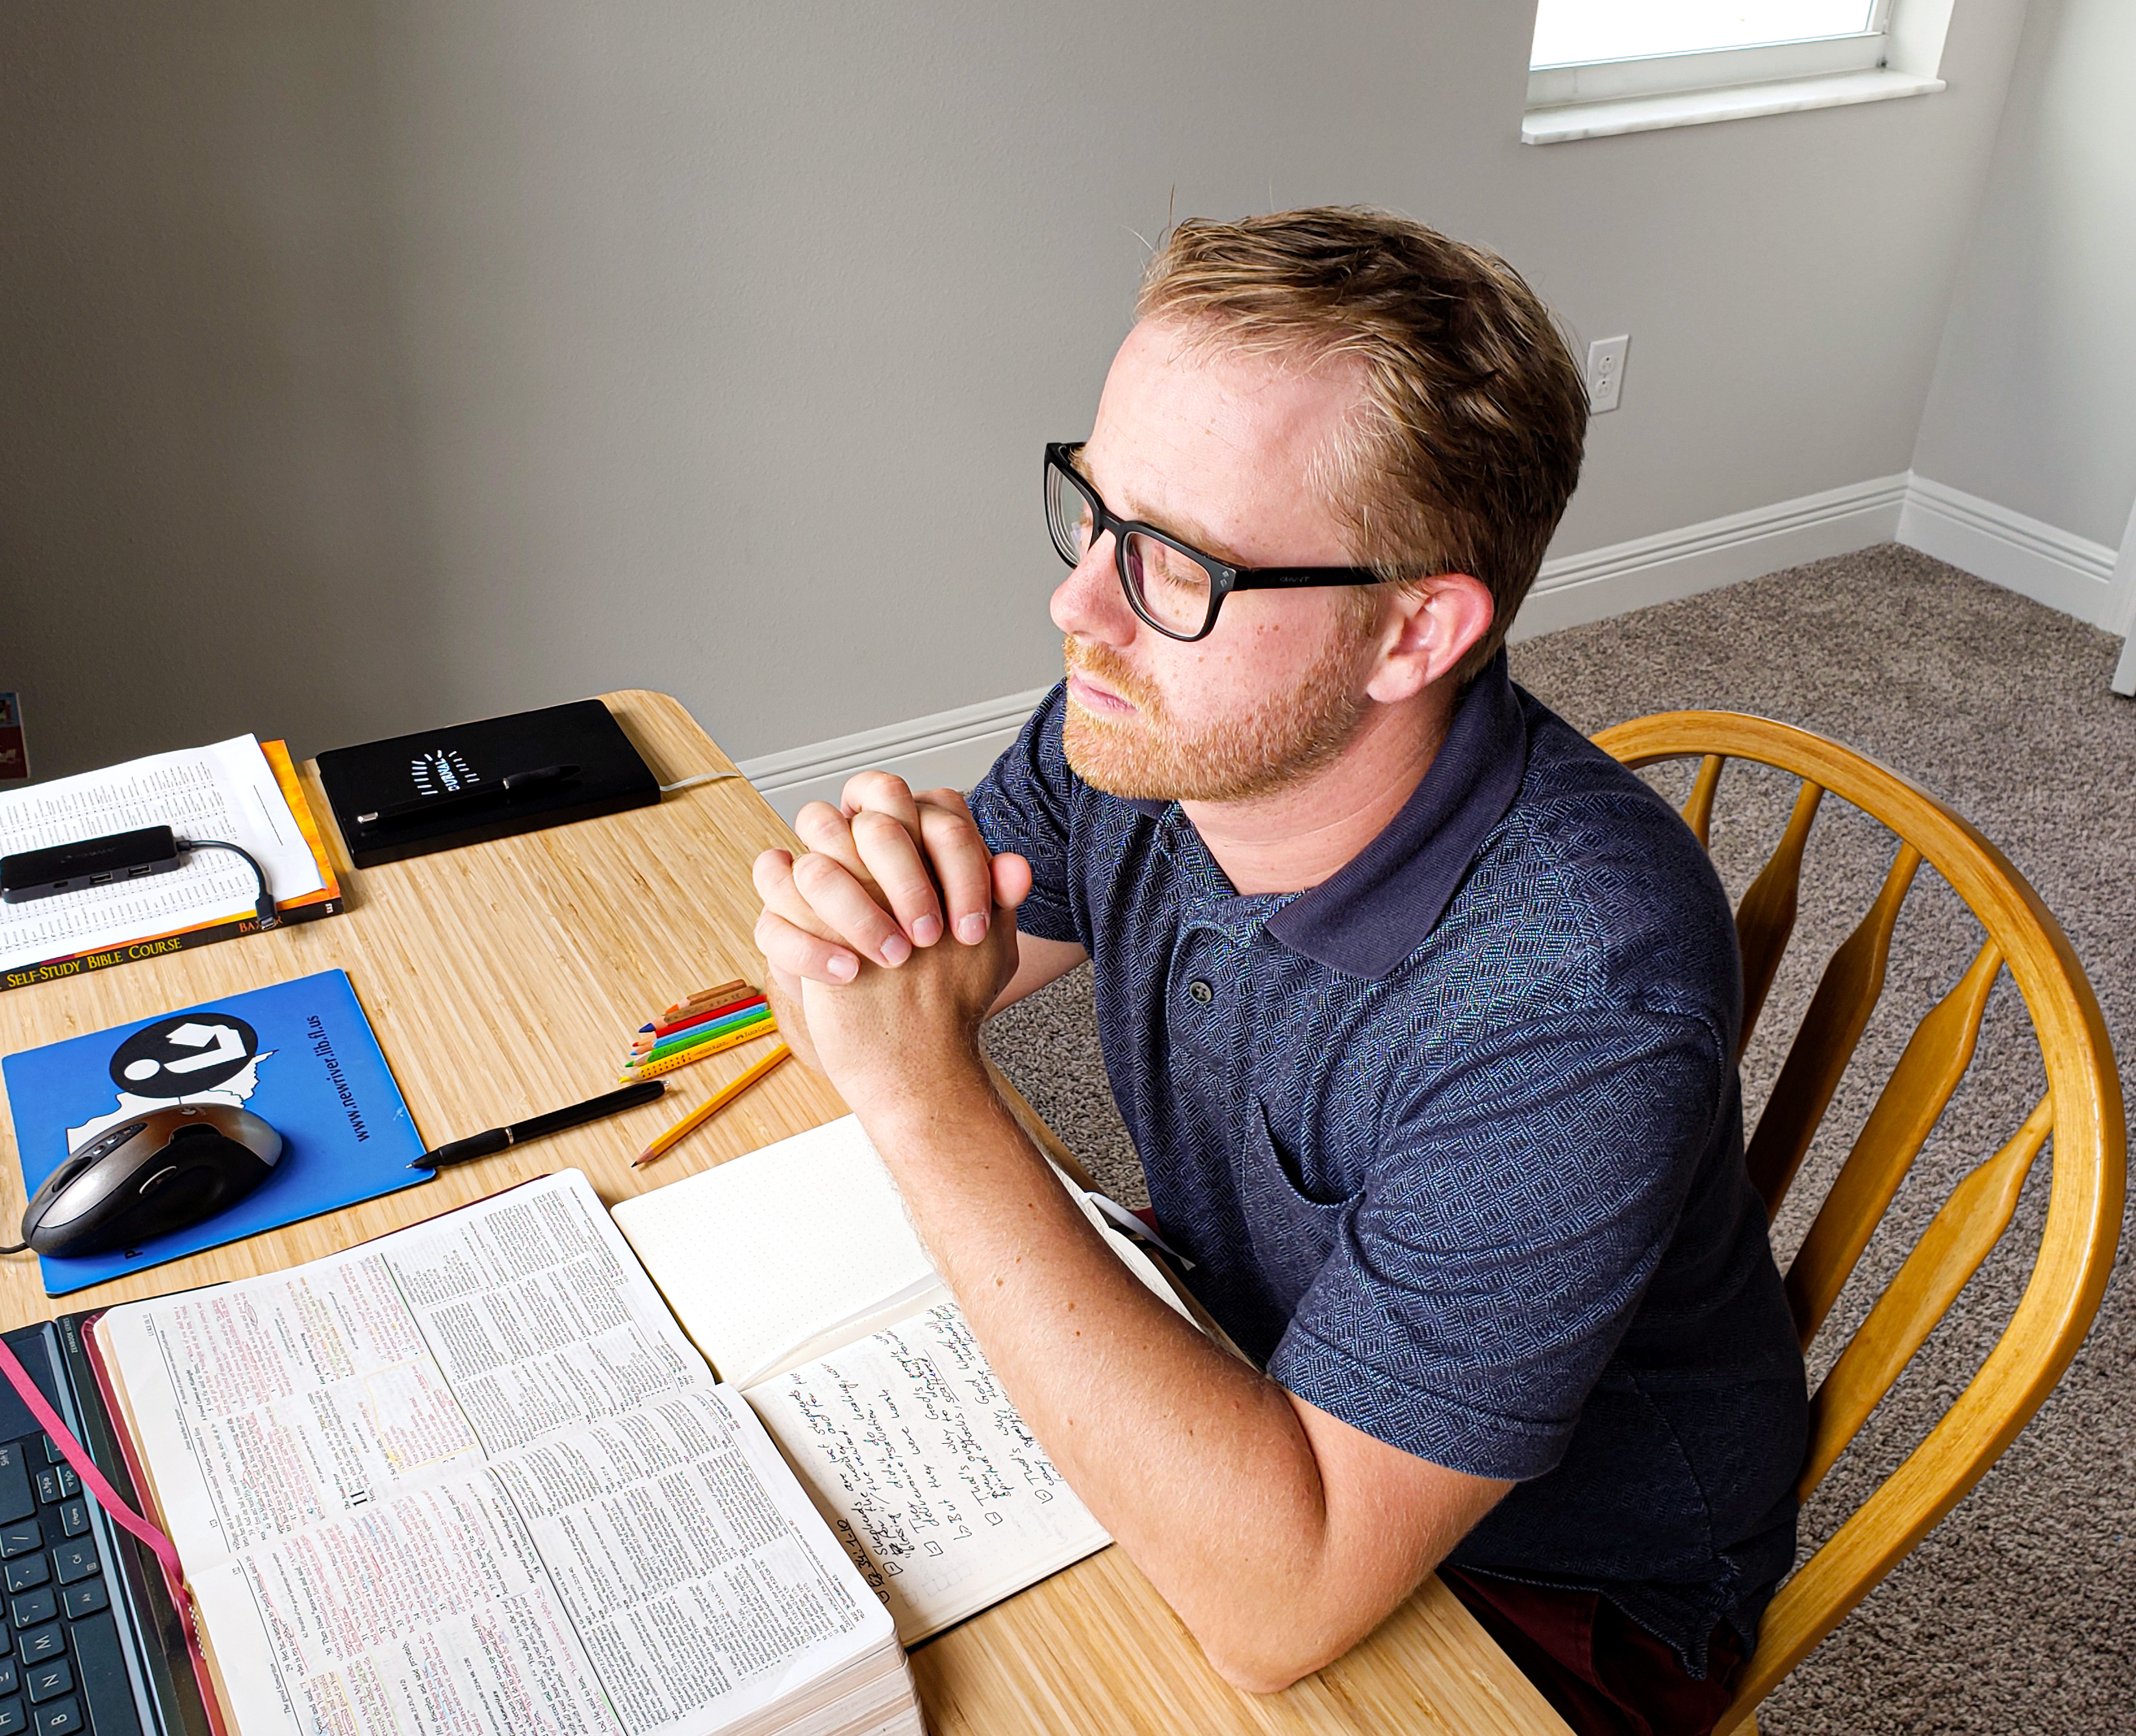 A man prays at his desk with his hands folded.